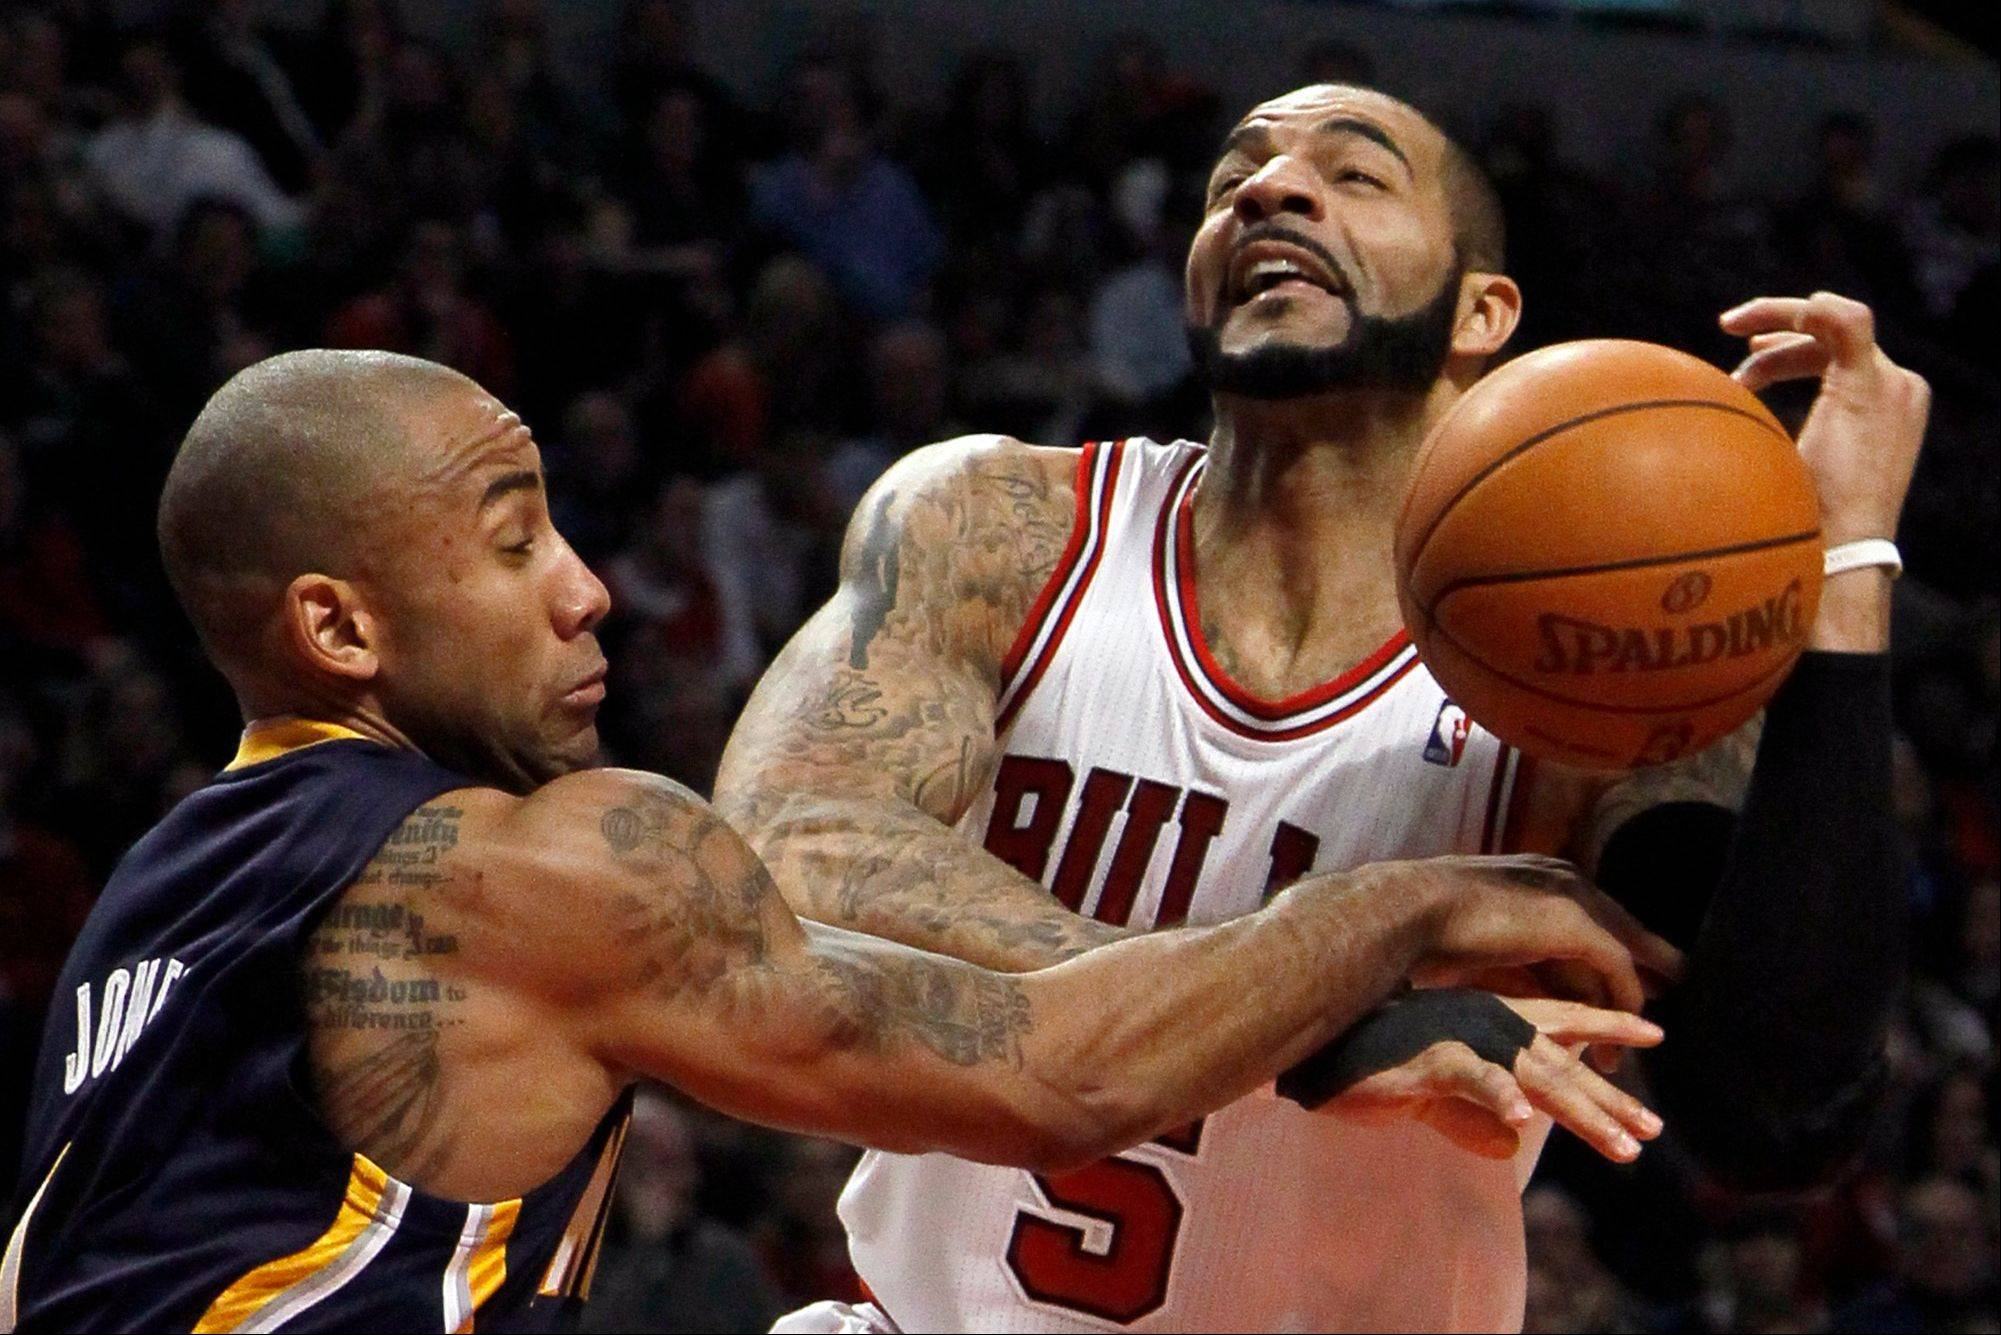 Indiana Pacers guard Dahntay Jones, left, fouls forward Carlos Boozer during the first half Wednesday. Last year's first-round playoff series between the Bulls and Pacers was marked by physical play, an approach Pacers coach Jeff Vogel says the team will continue this season.